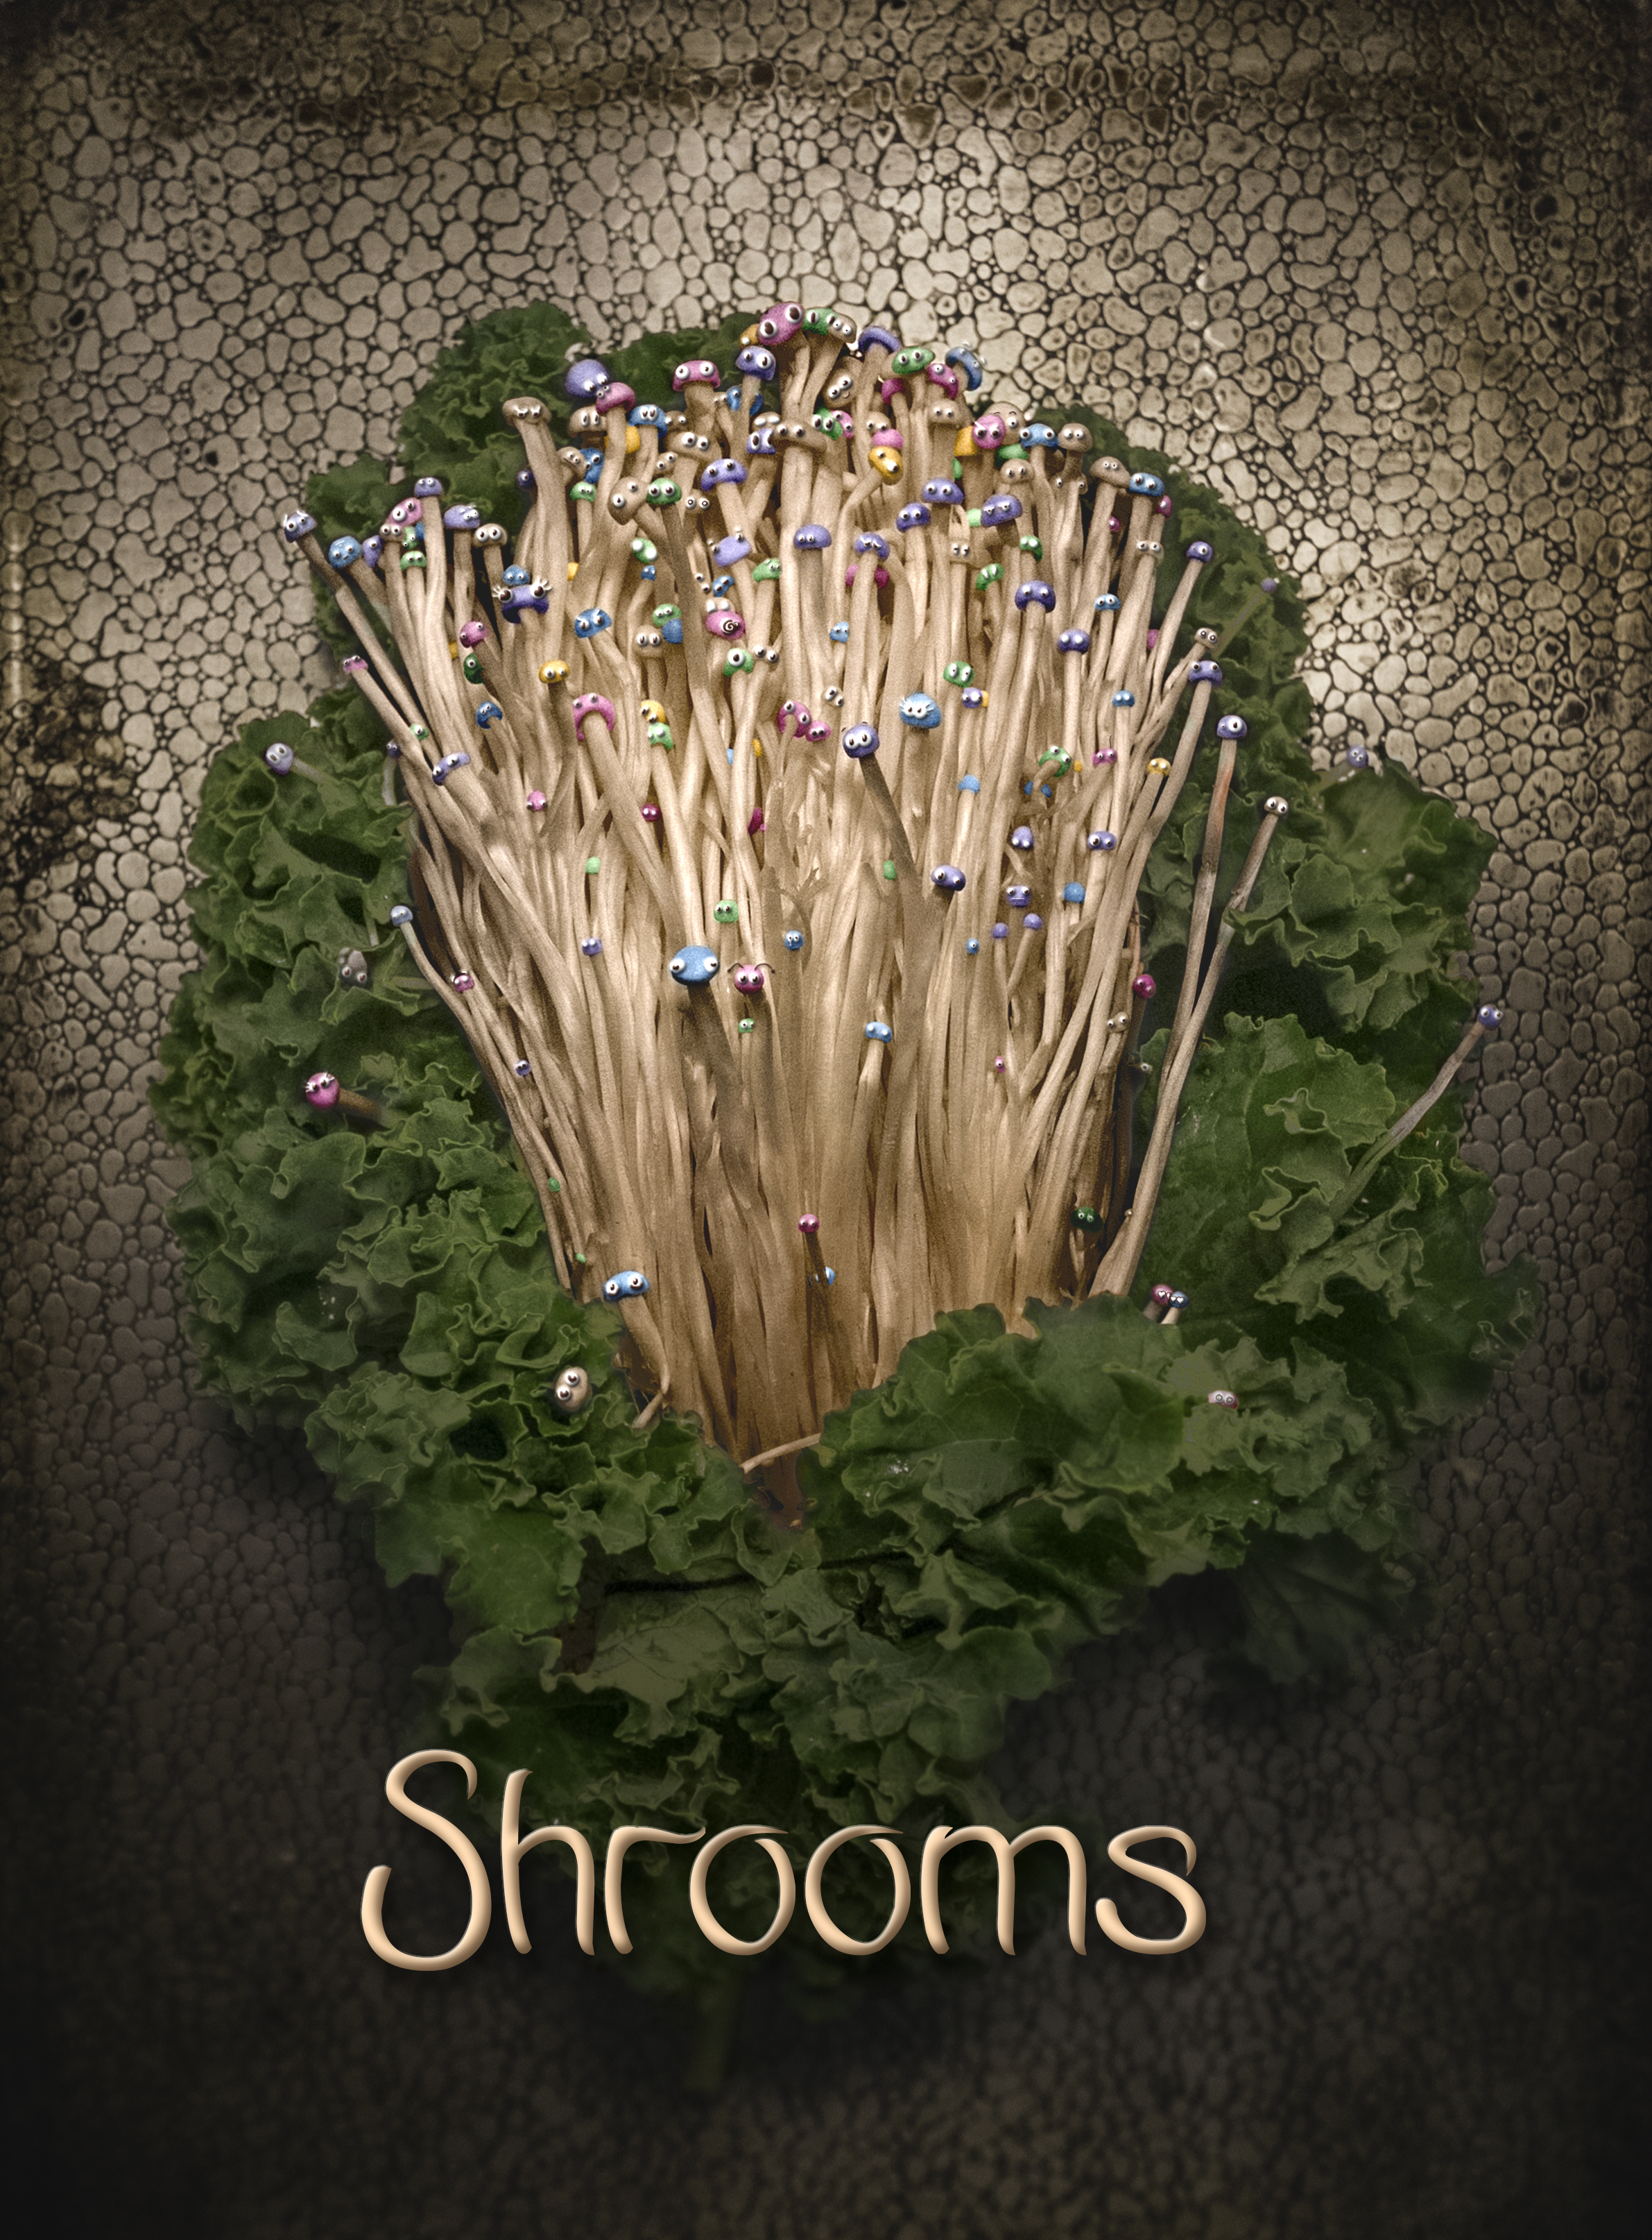 Shrooms - Personal project